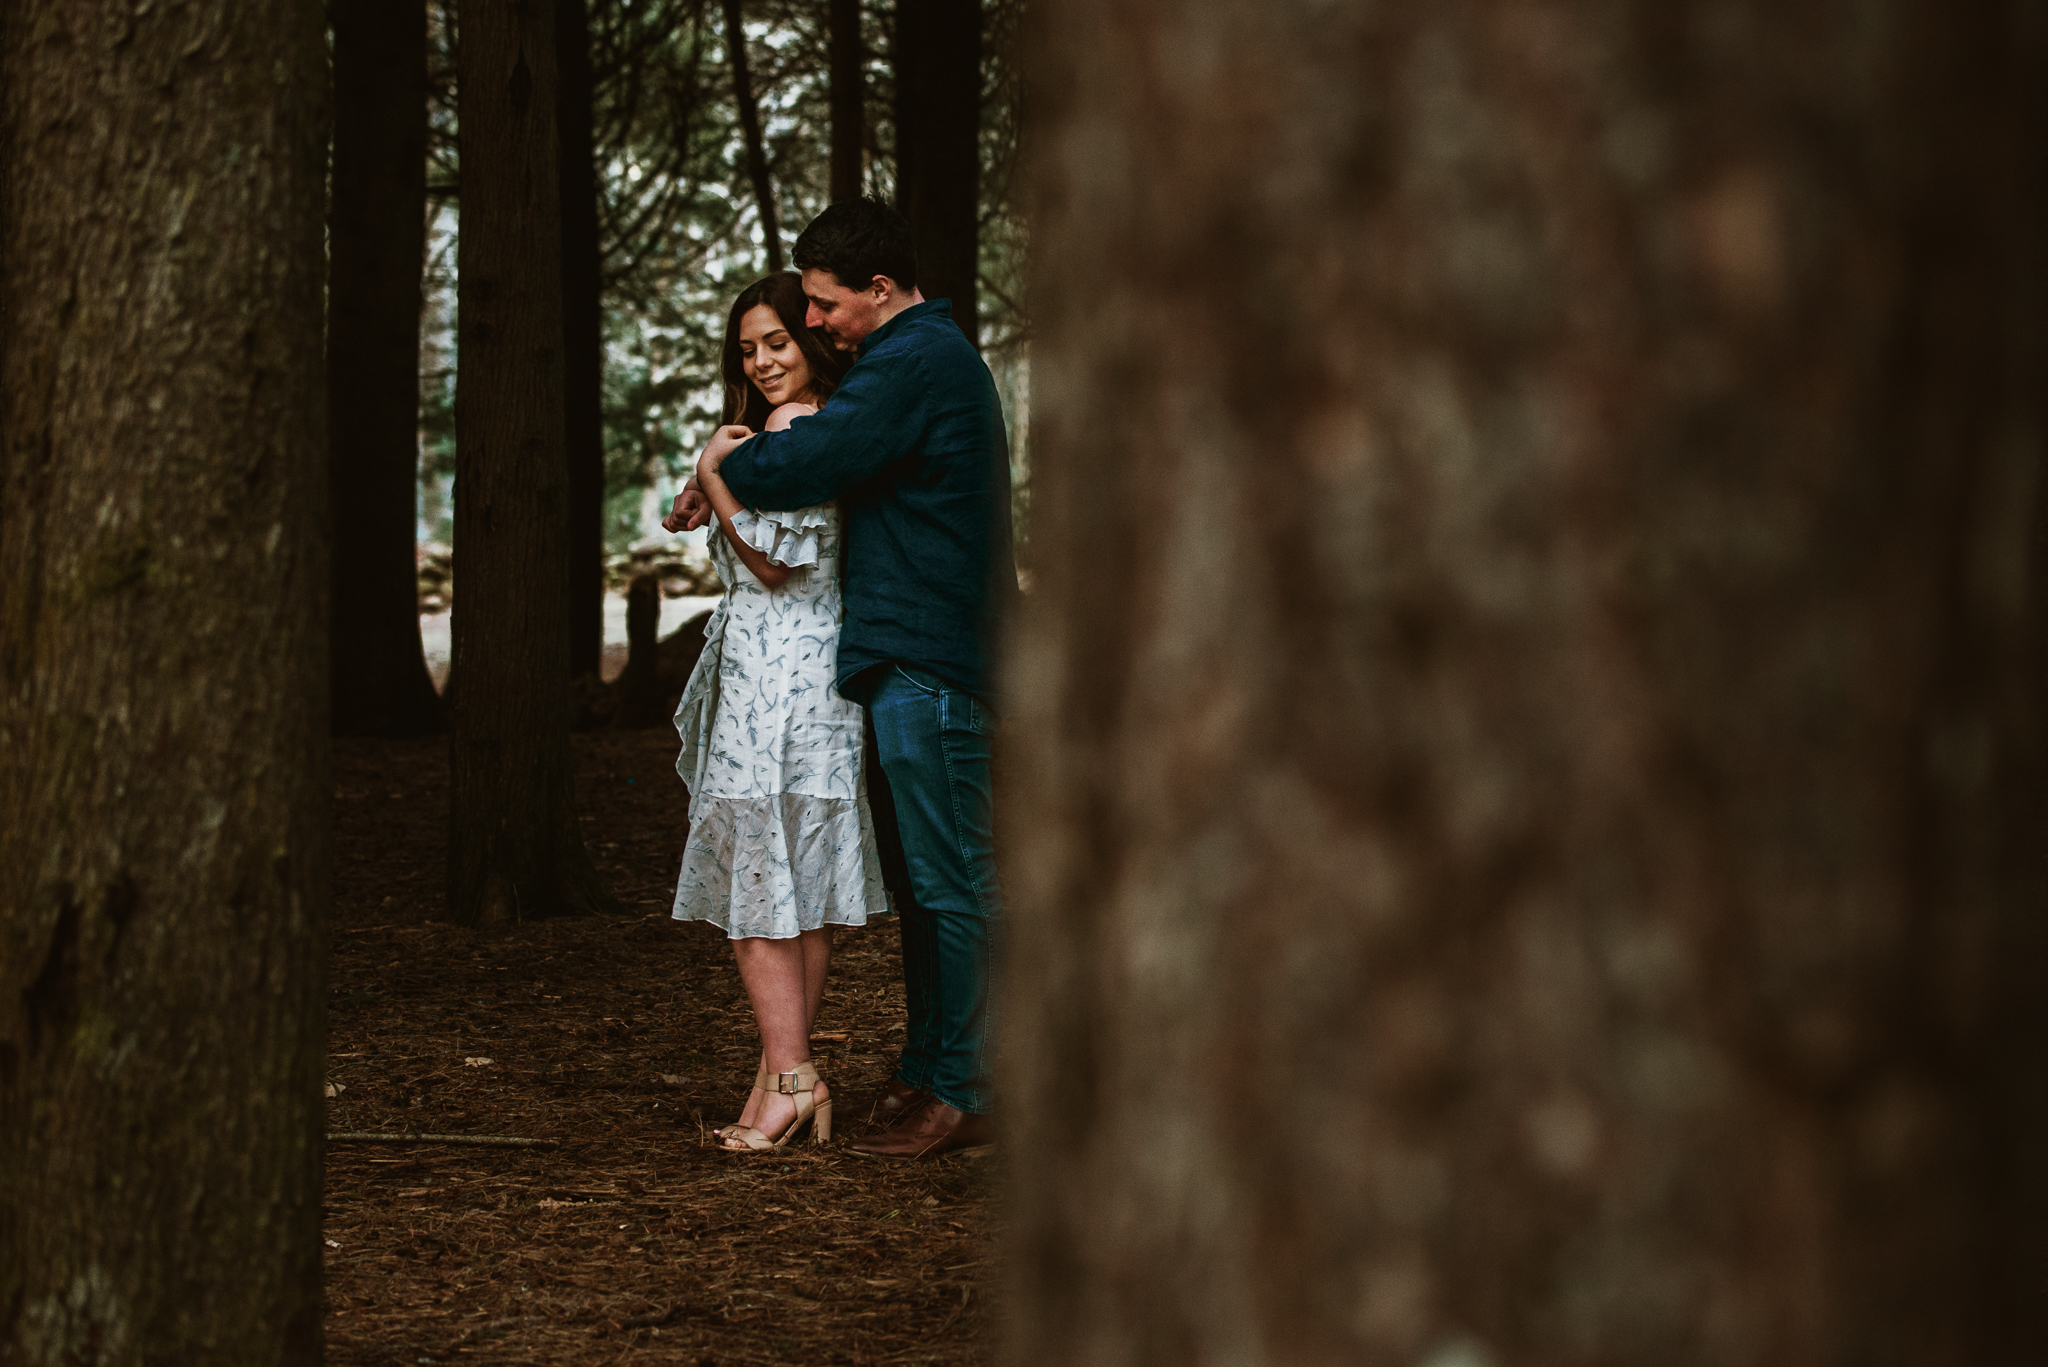 launceston couples photographer-6.jpg